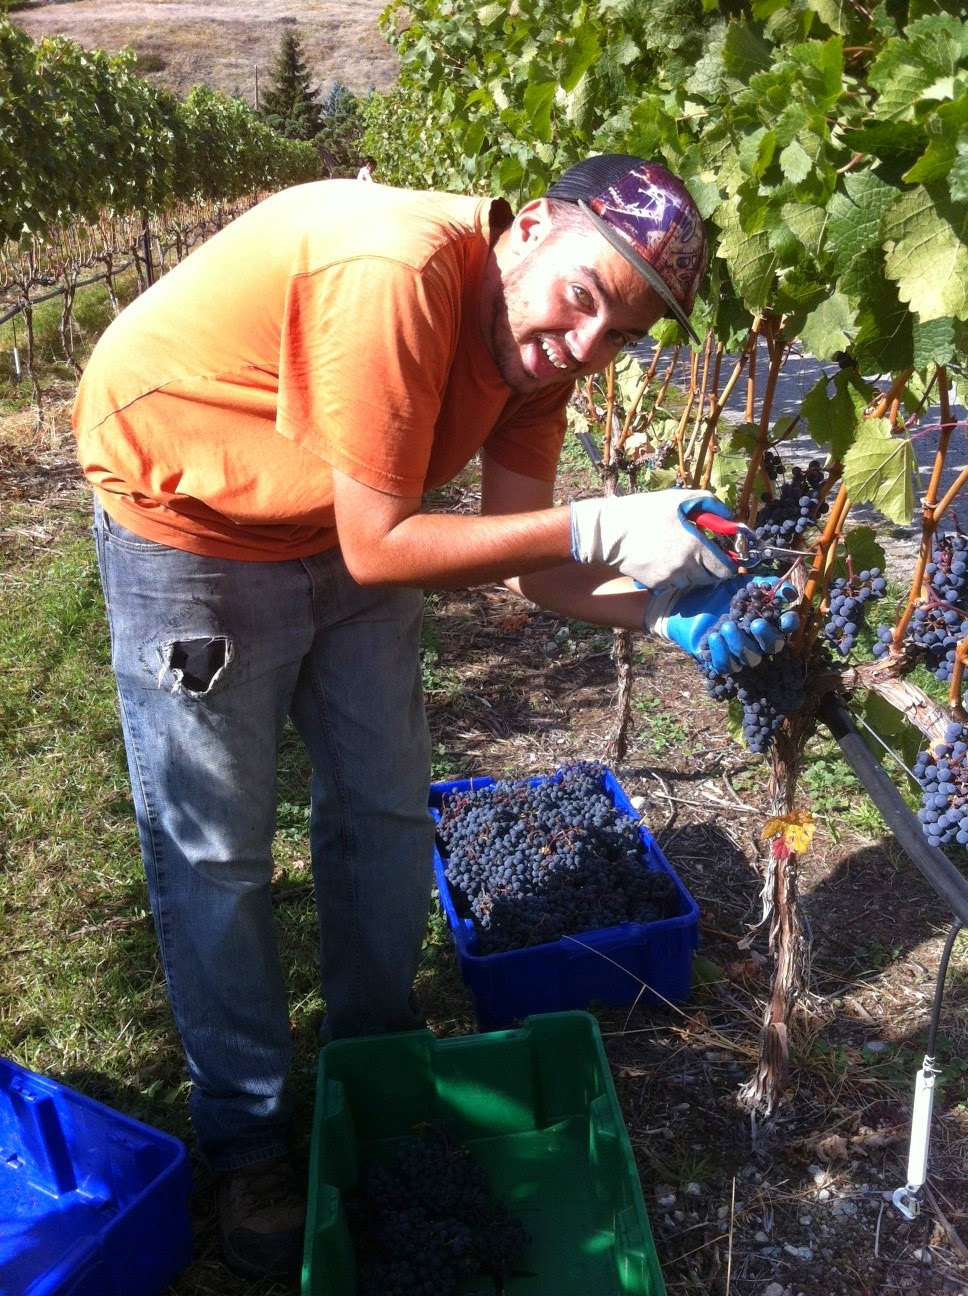 Artist Will Hoffman working in the vineyard